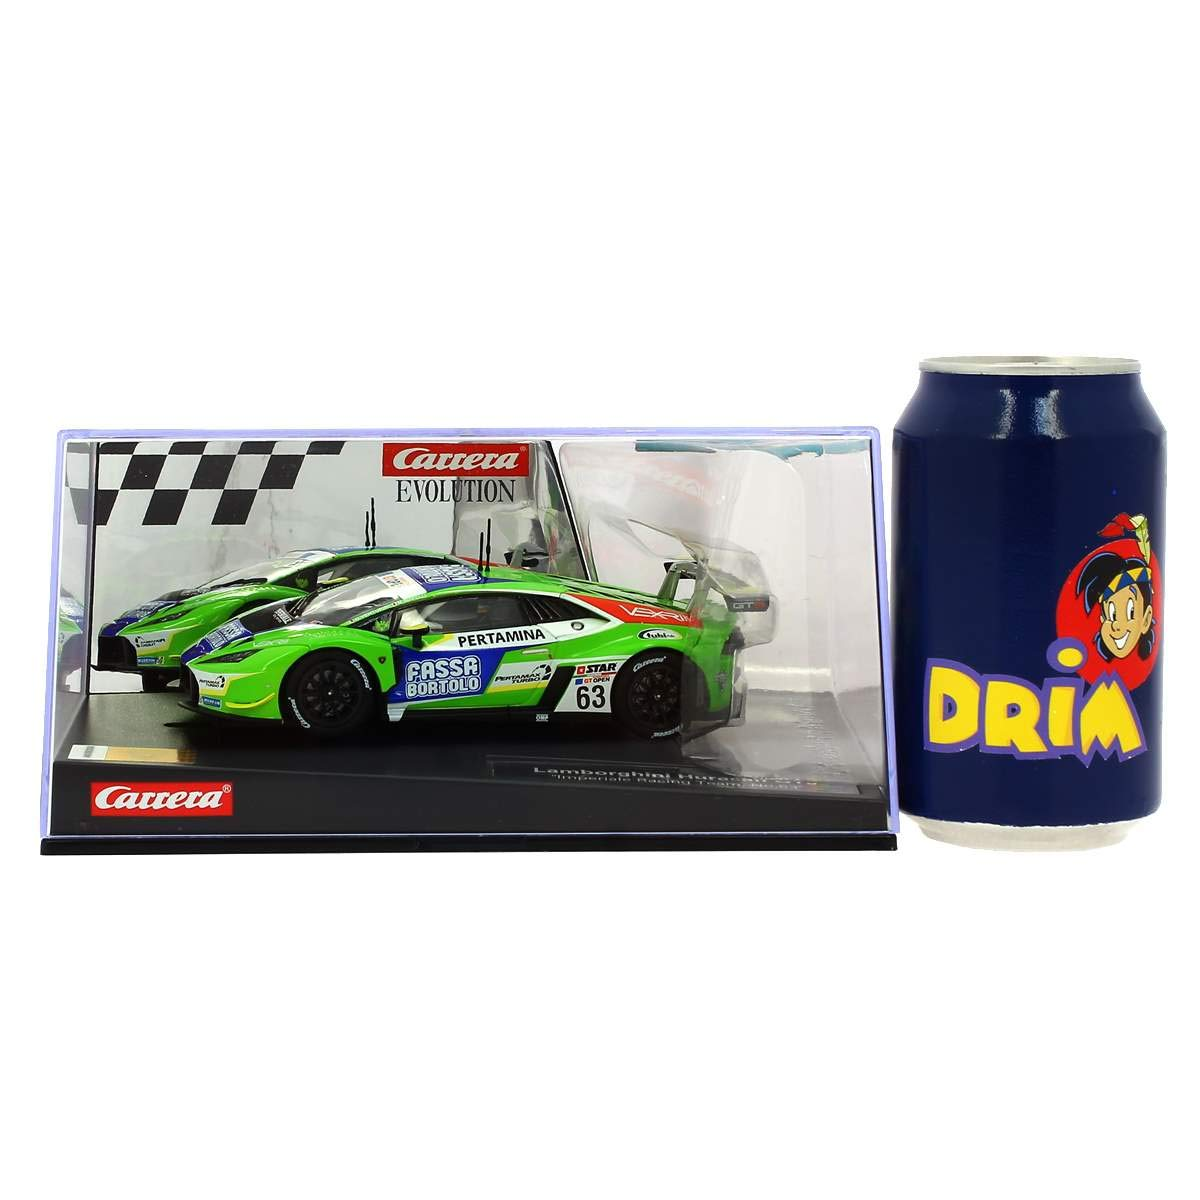 Carrera 27589 Lamborghini Huracán GT3 Imperiale Racing Team No. 63 1:32 Scale Analog Evolution Slot Car Racing Vehicle